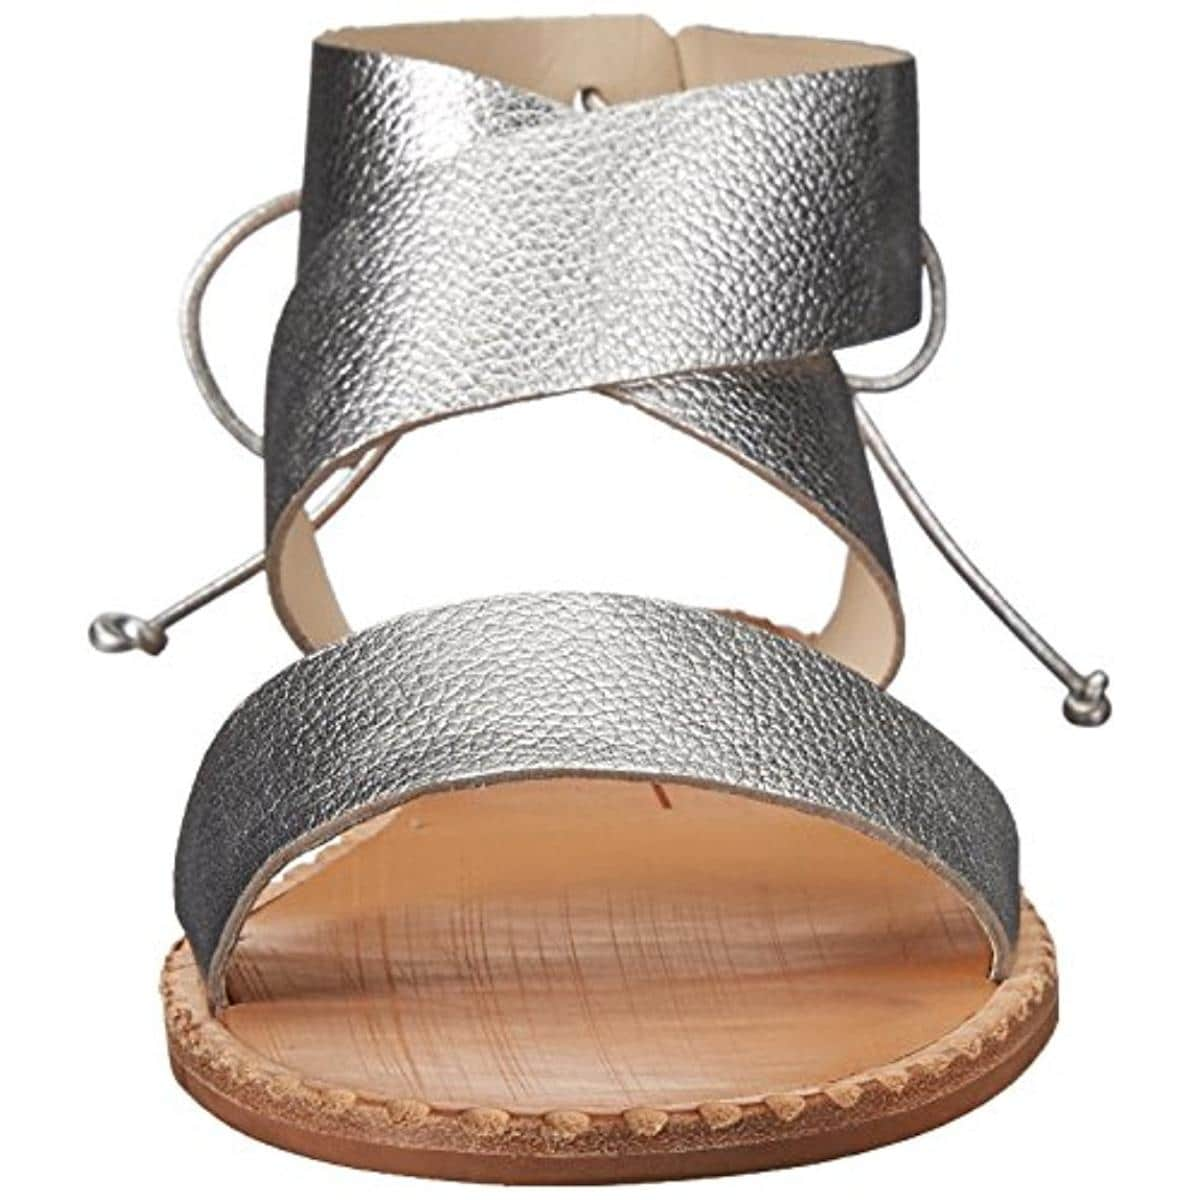 fdb8583d2 Shop Dolce Vita Womens Pomona Flat Sandals Leather Metallic - Free Shipping  Today - Overstock - 21260010